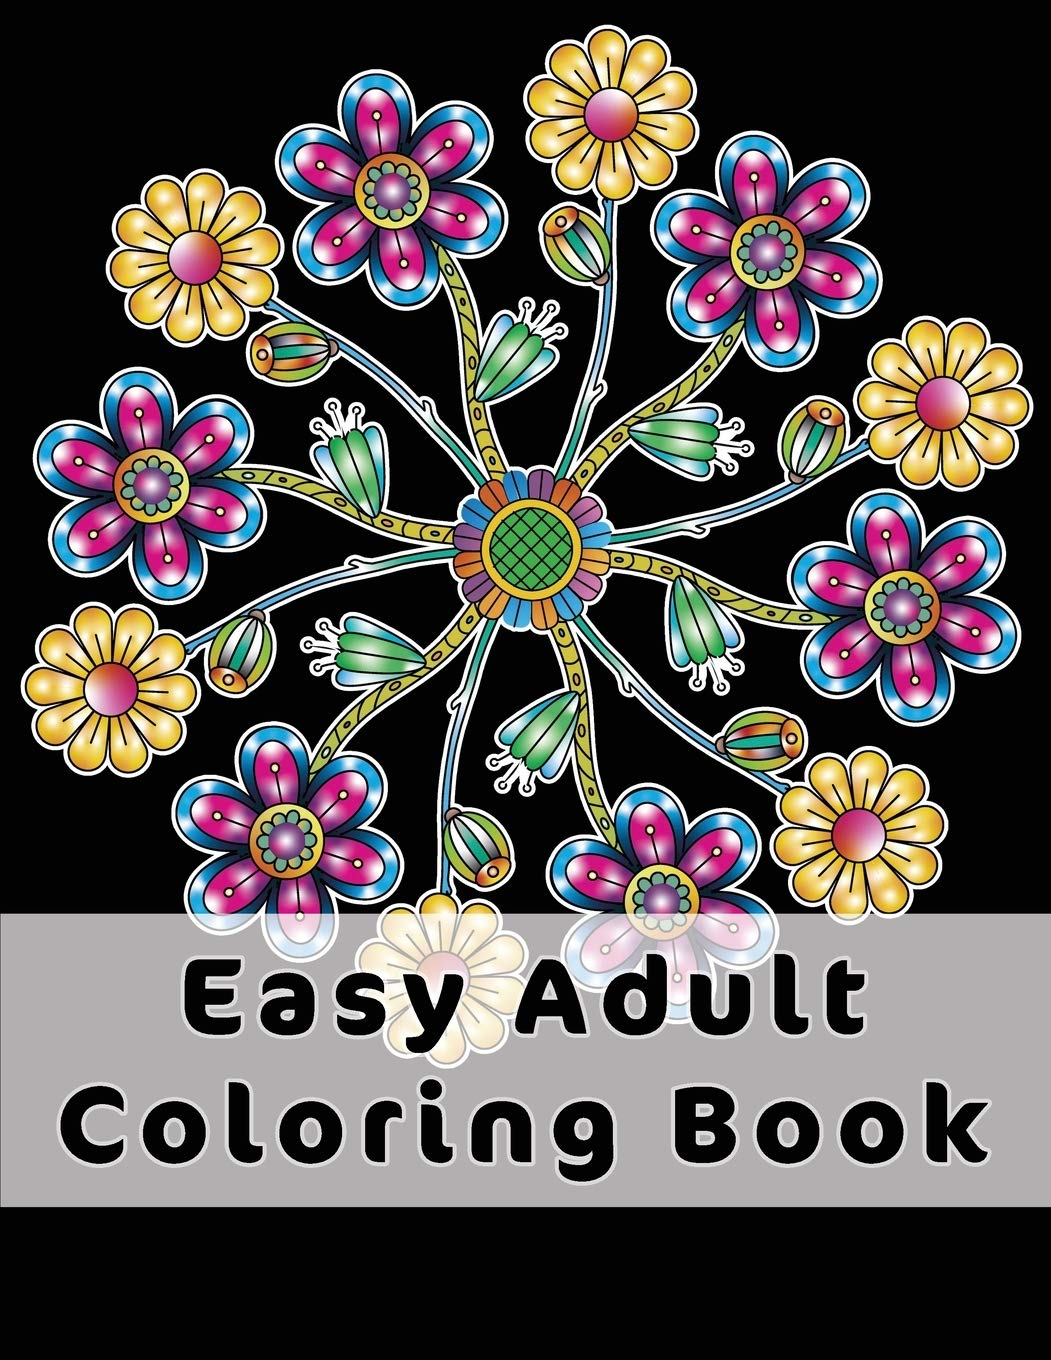 Easy Adult Coloring Book Gorgeous Designs Flowers Birds And Butterflies In Large Print Relaxing Coloring Pages For Adults Seniors Help With Stress Relief Dementia And Depression Amazon In Publishing Joyful Colors Books